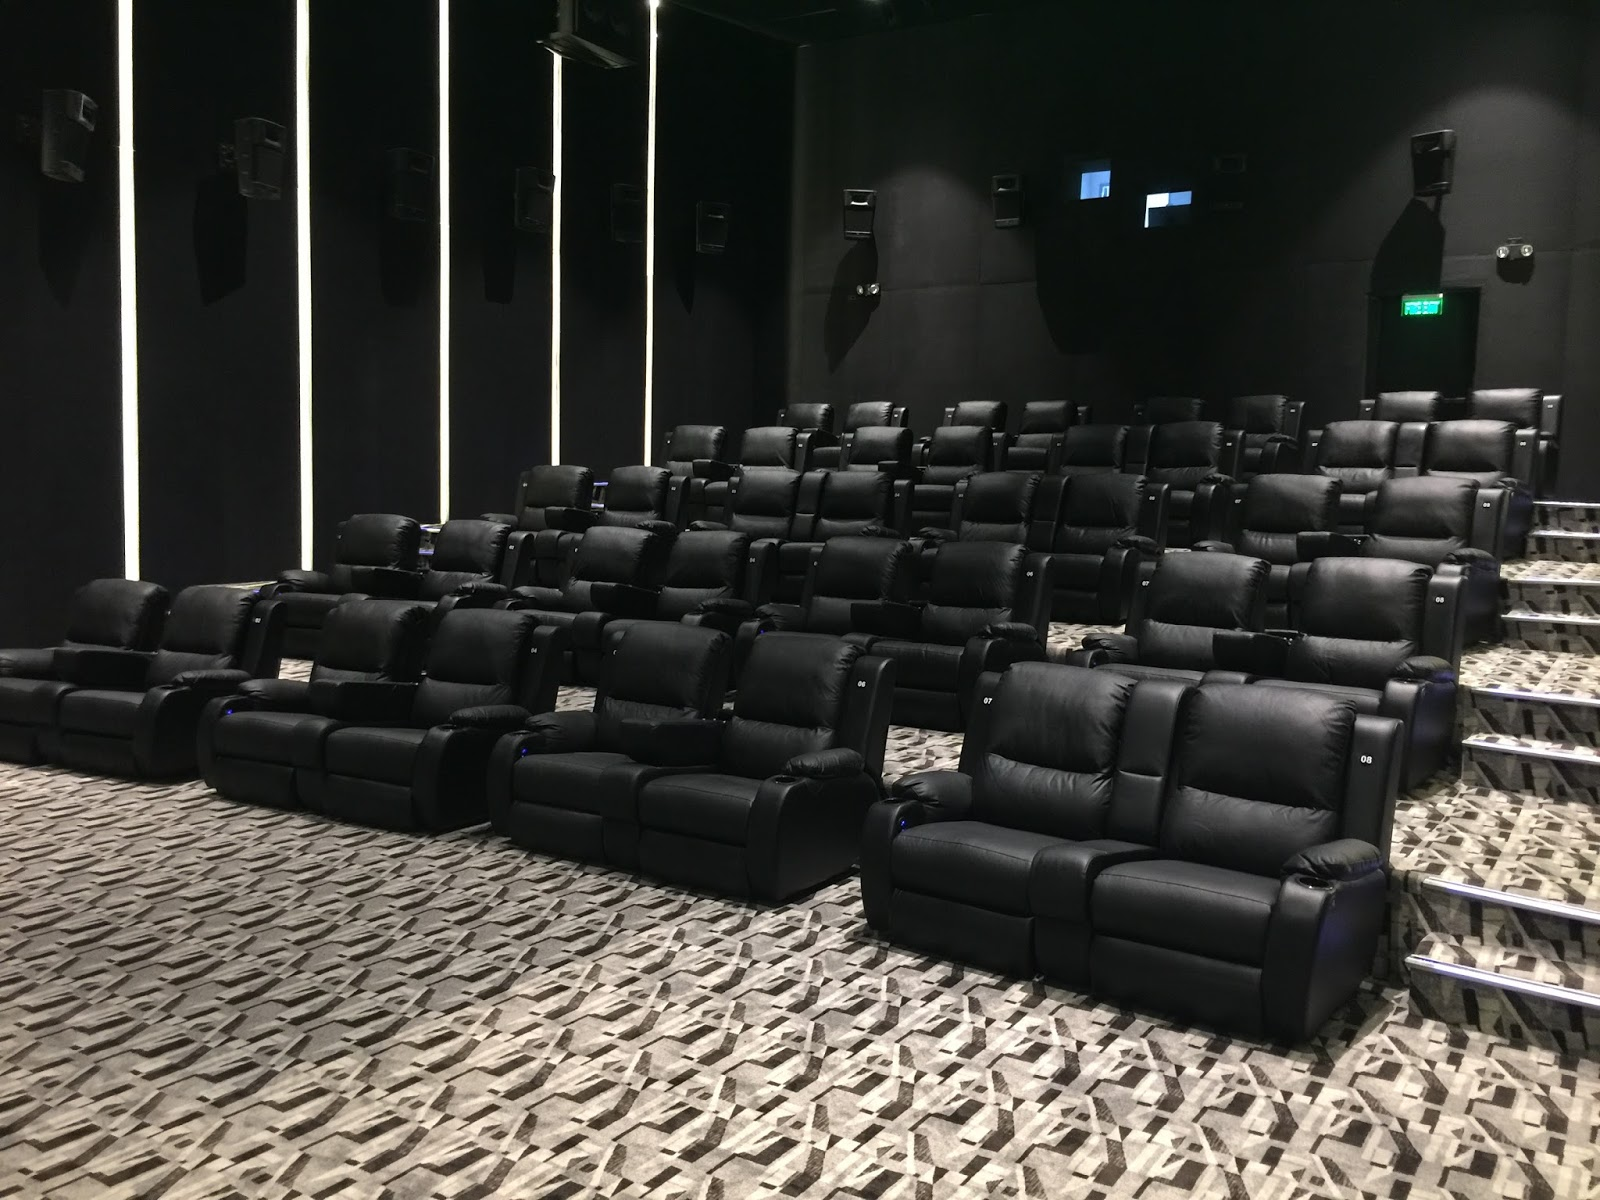 part cinemas it with theater rebranding during opens theaters plans movie and pi new mall las at is underwent expansion lovers second recliner its this vista quarter upgrade as upscale the img luxury chair lakwatsera of